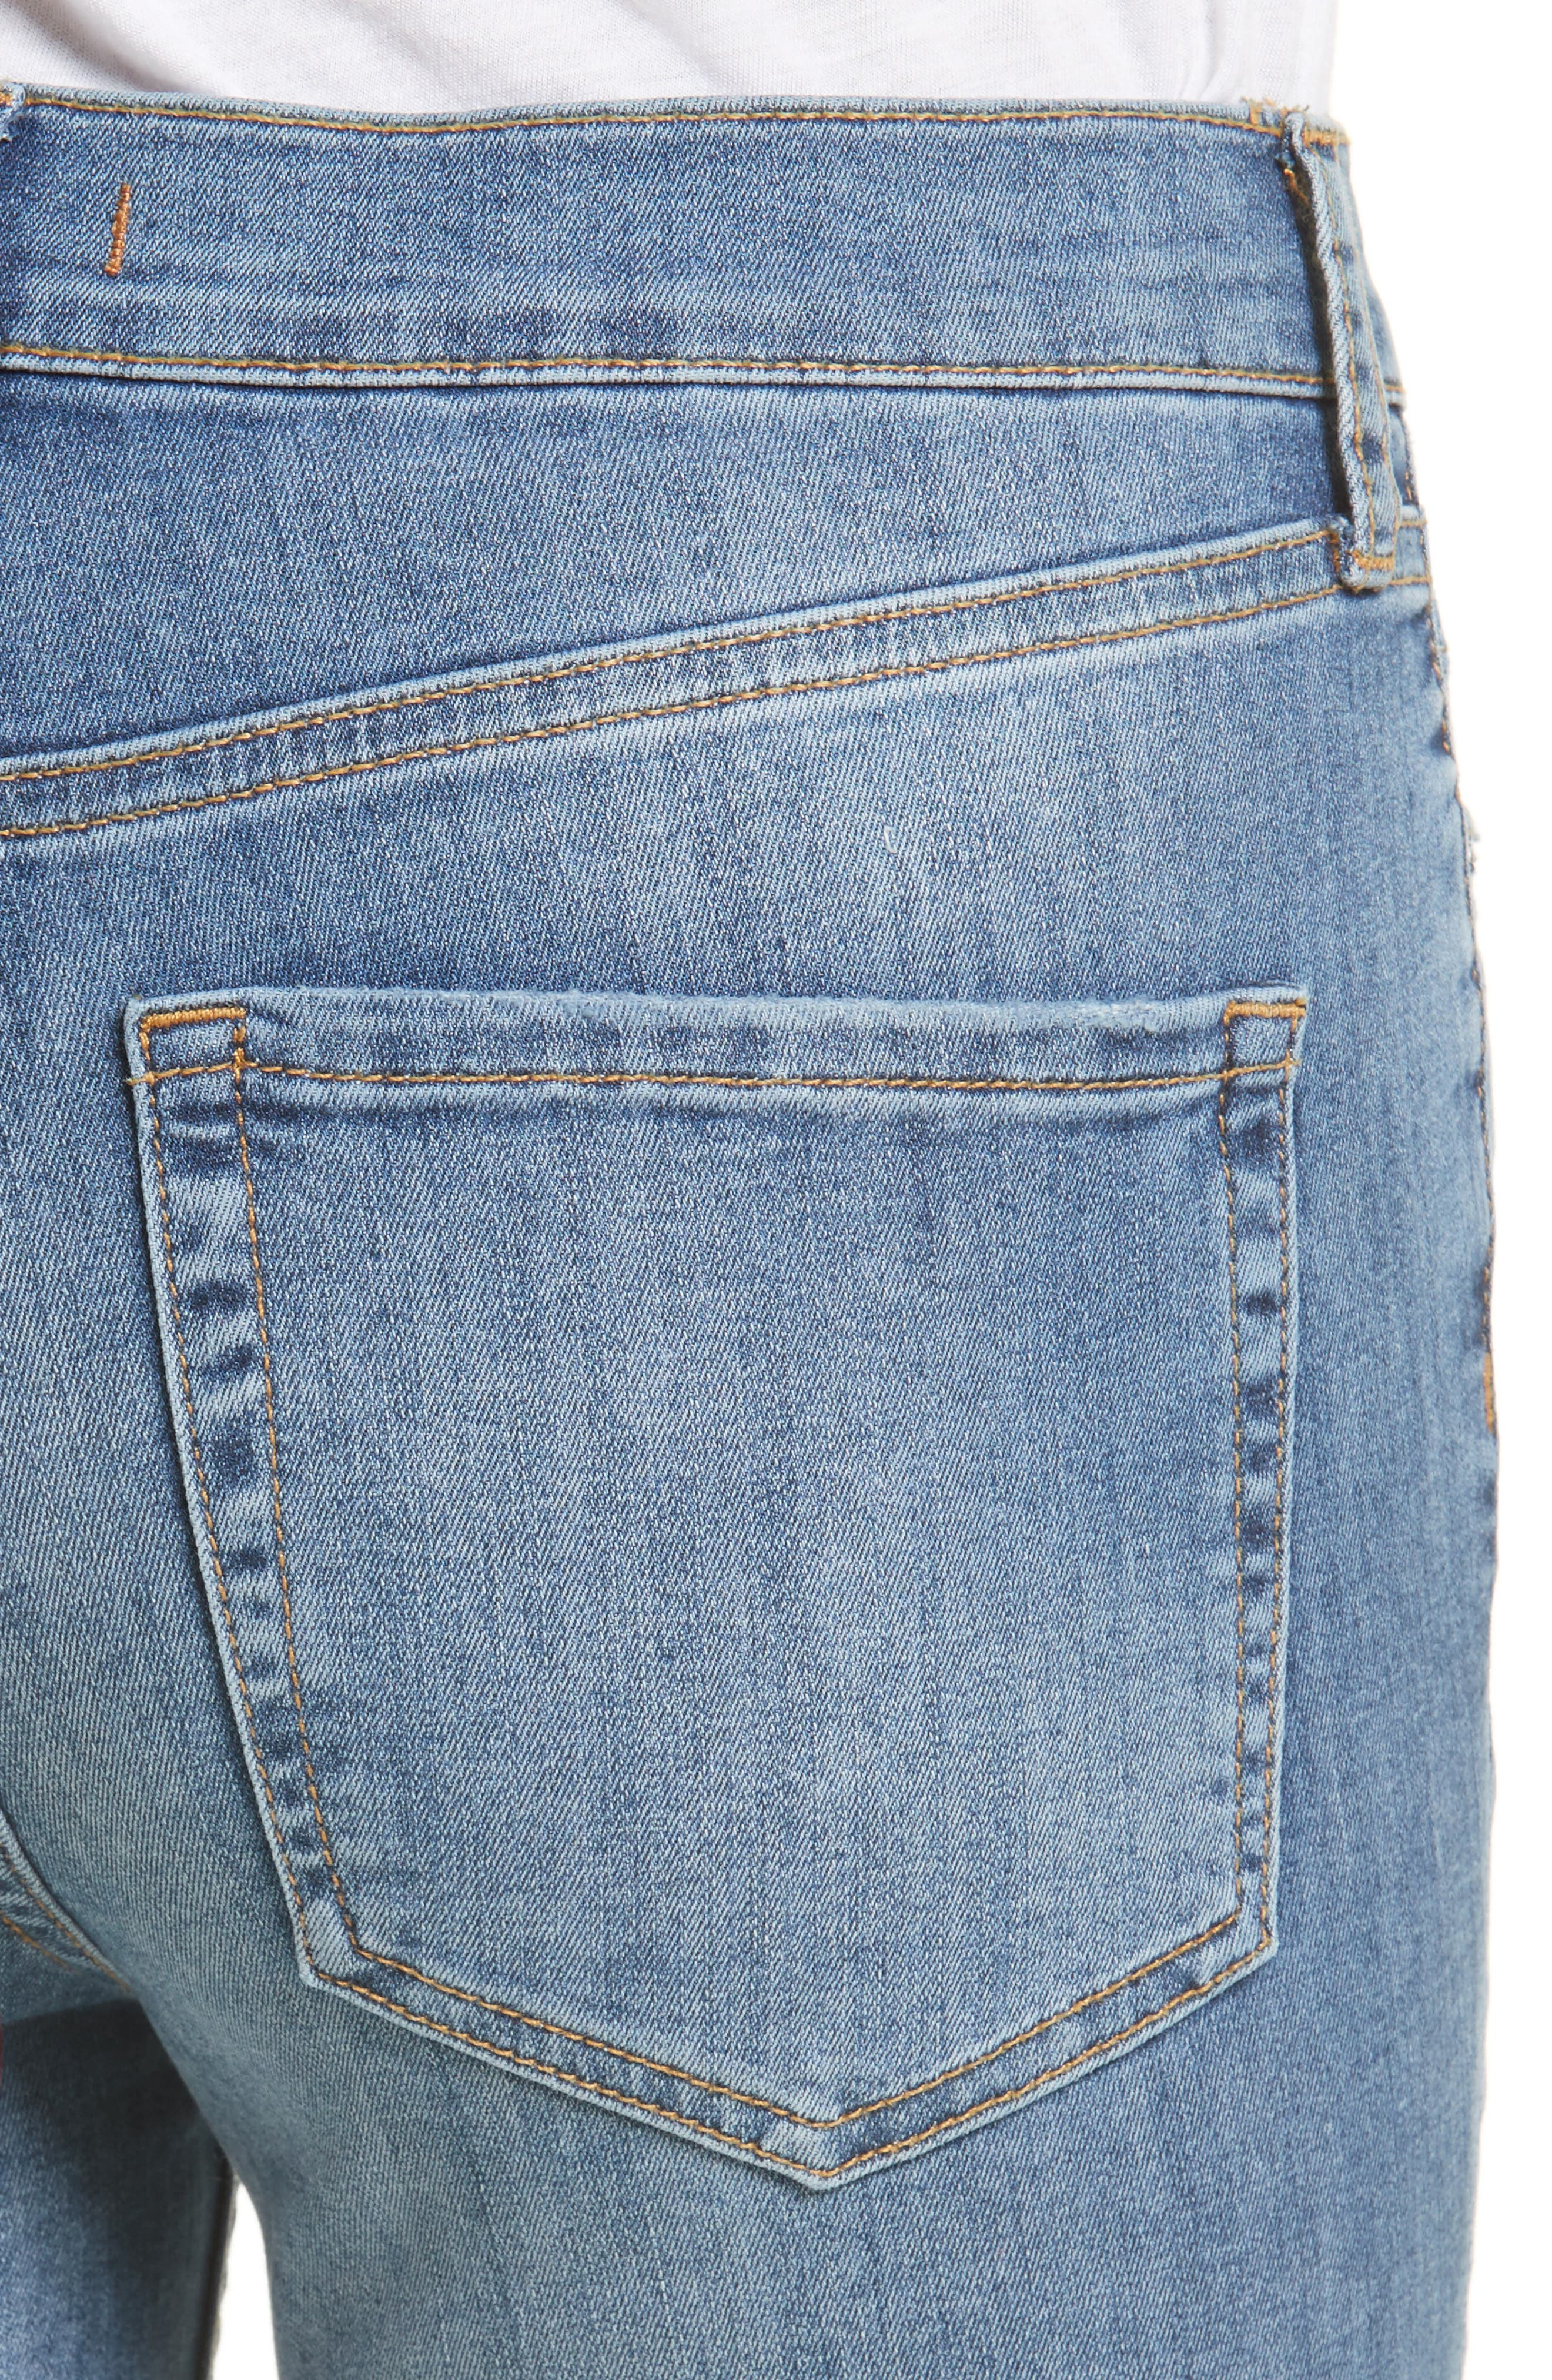 Alternate Image 4  - Free People High Rise Busted Knee Skinny Jeans (Light Denim)